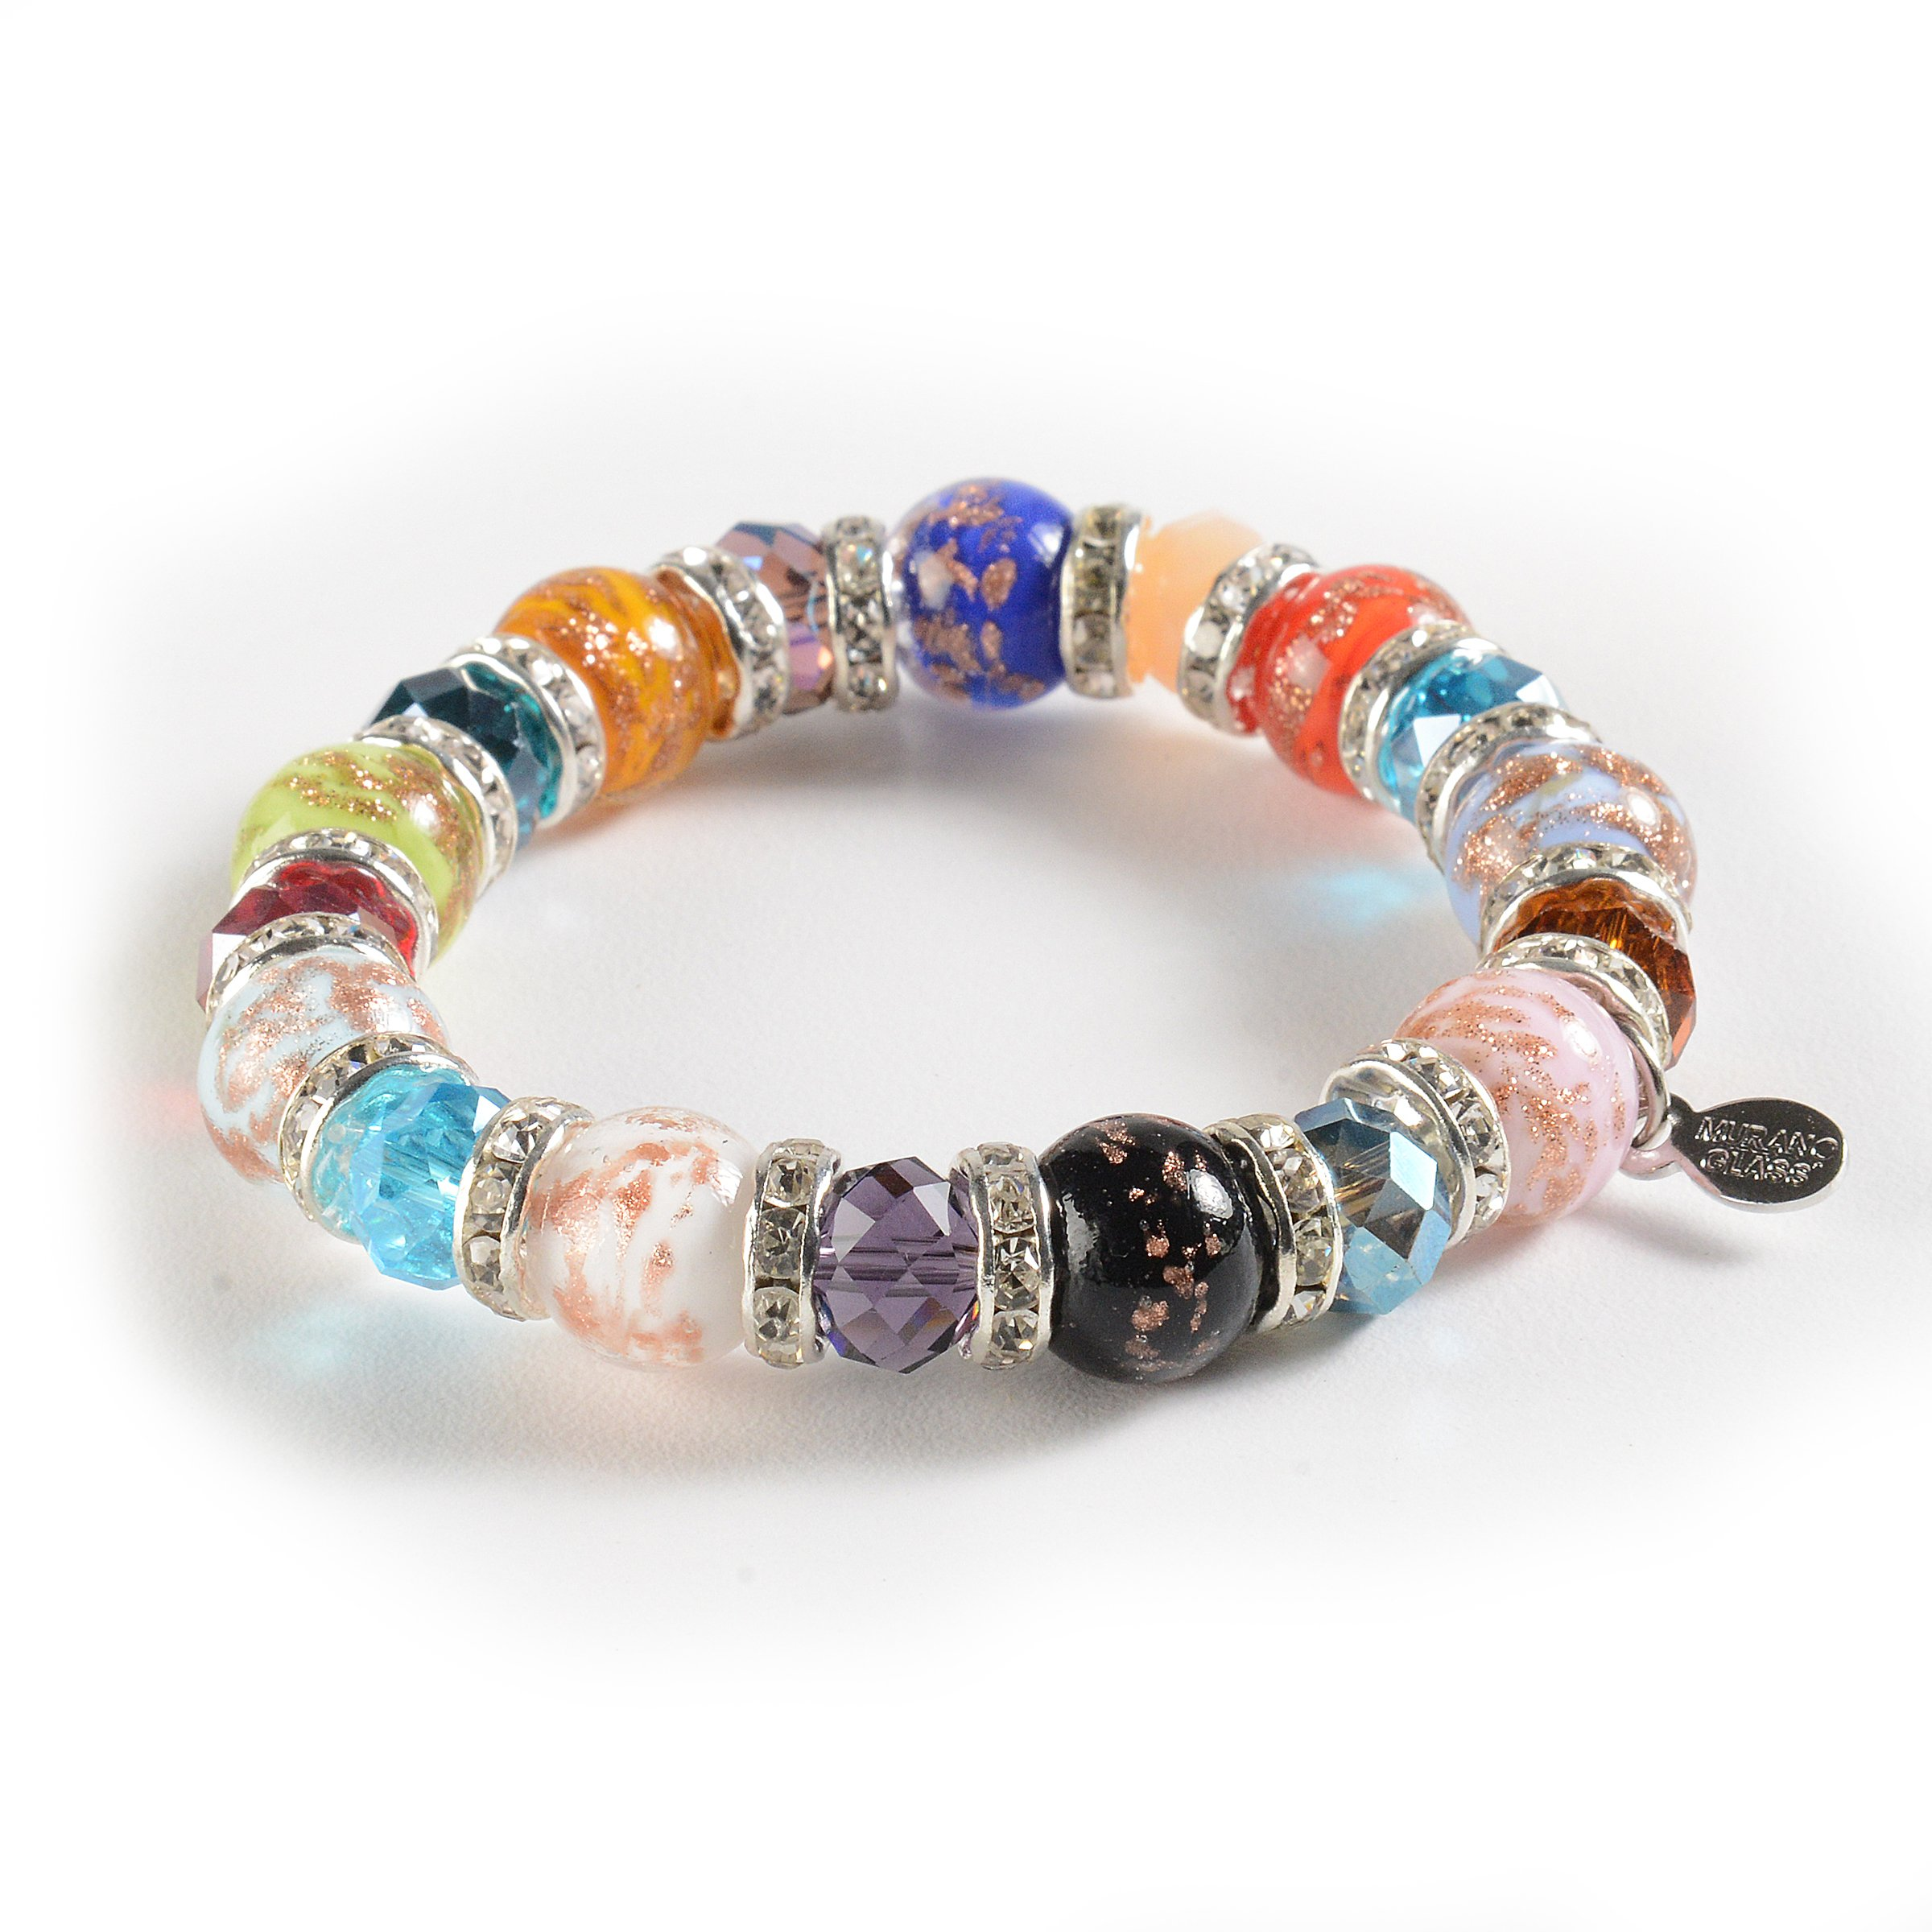 Murano Glass Bracelet, Handmade Vibrant Murano Glass Beads, Elastic Stretch Bracelet, Each Murano Charm Bead is Unique, Colorful, and Exquisite – Murano Glass Jewelry for Women Necklace, Imported